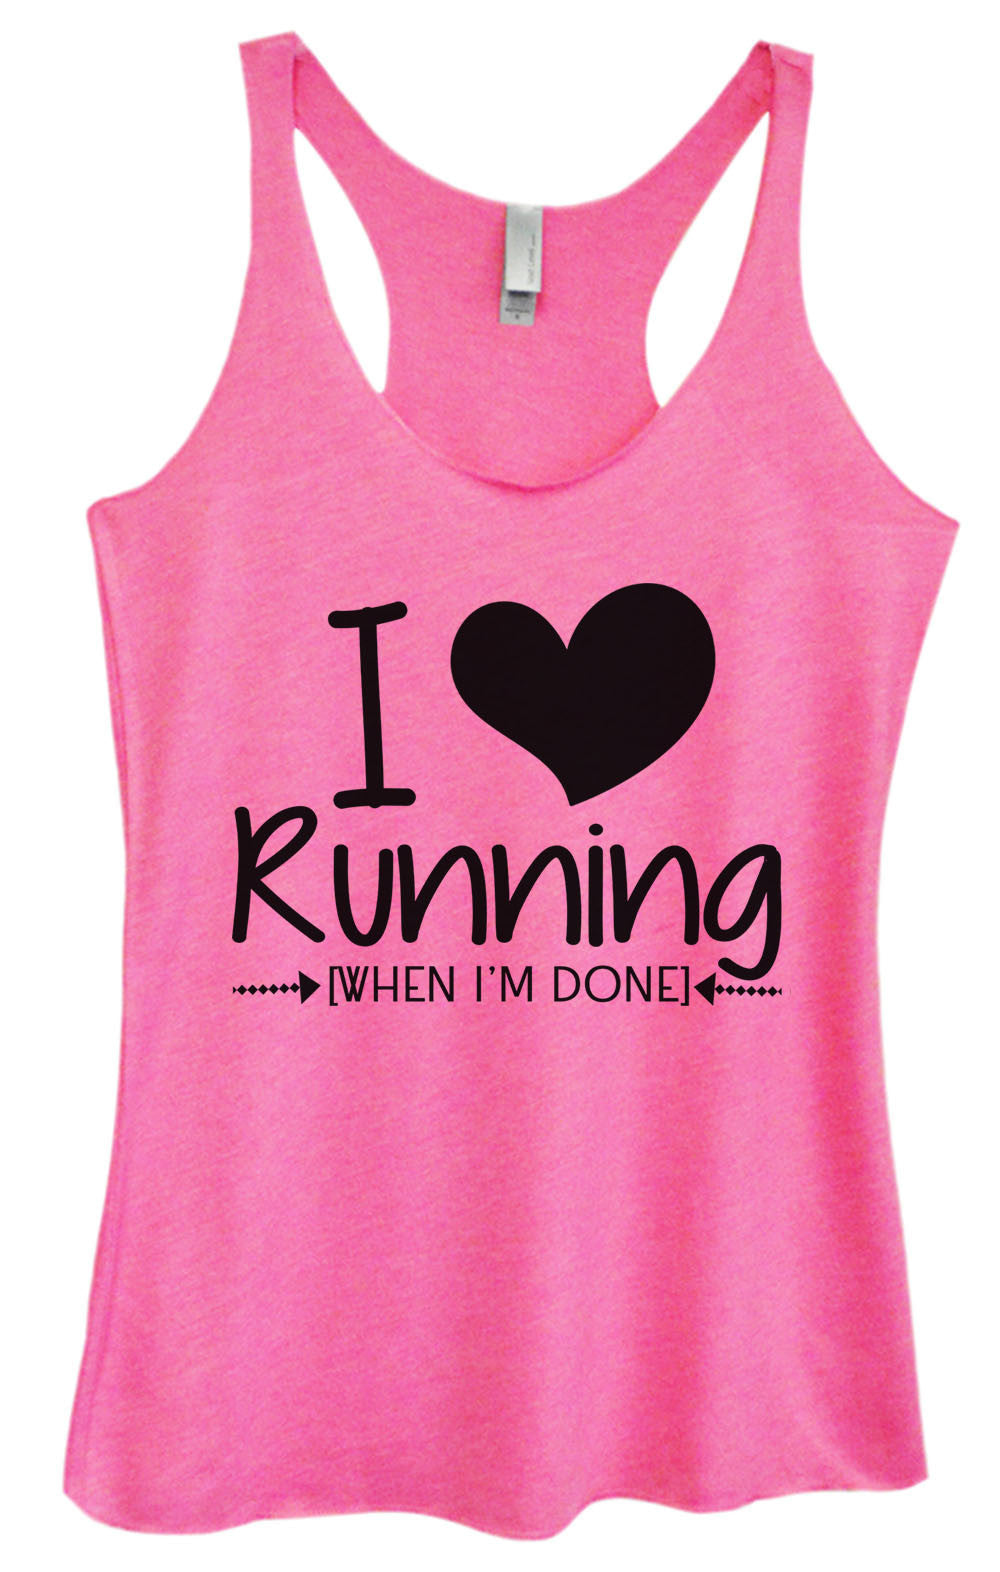 Womens Fashion Triblend Tank Top - I Love Running [When I'm Done] - Tri-1013 - Funny Shirts Tank Tops Burnouts and Triblends  - 3